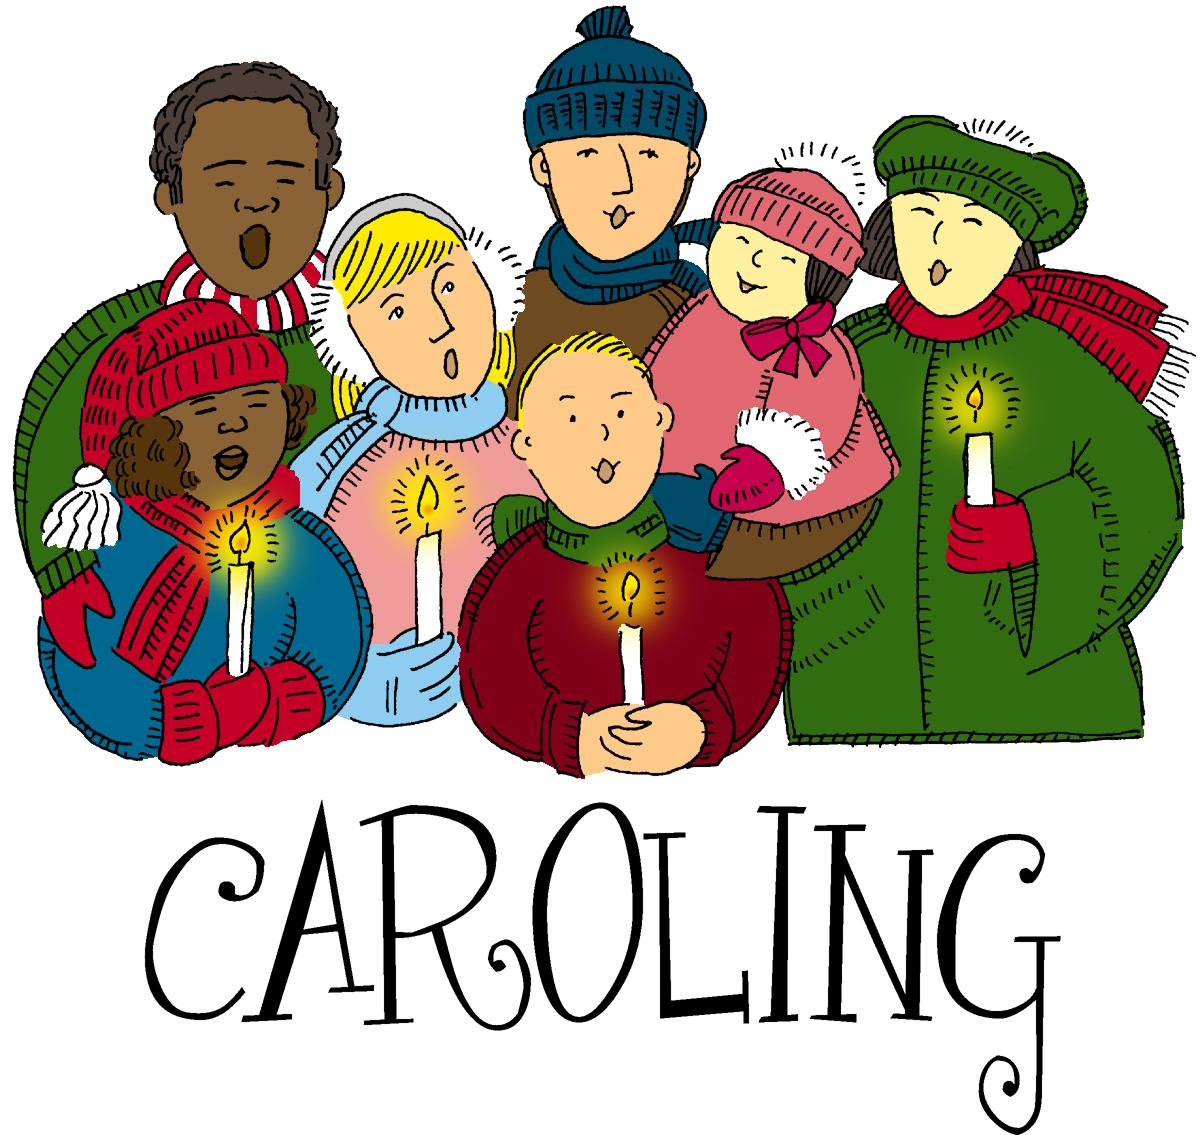 Caroling clipart person. Rotary club of fair